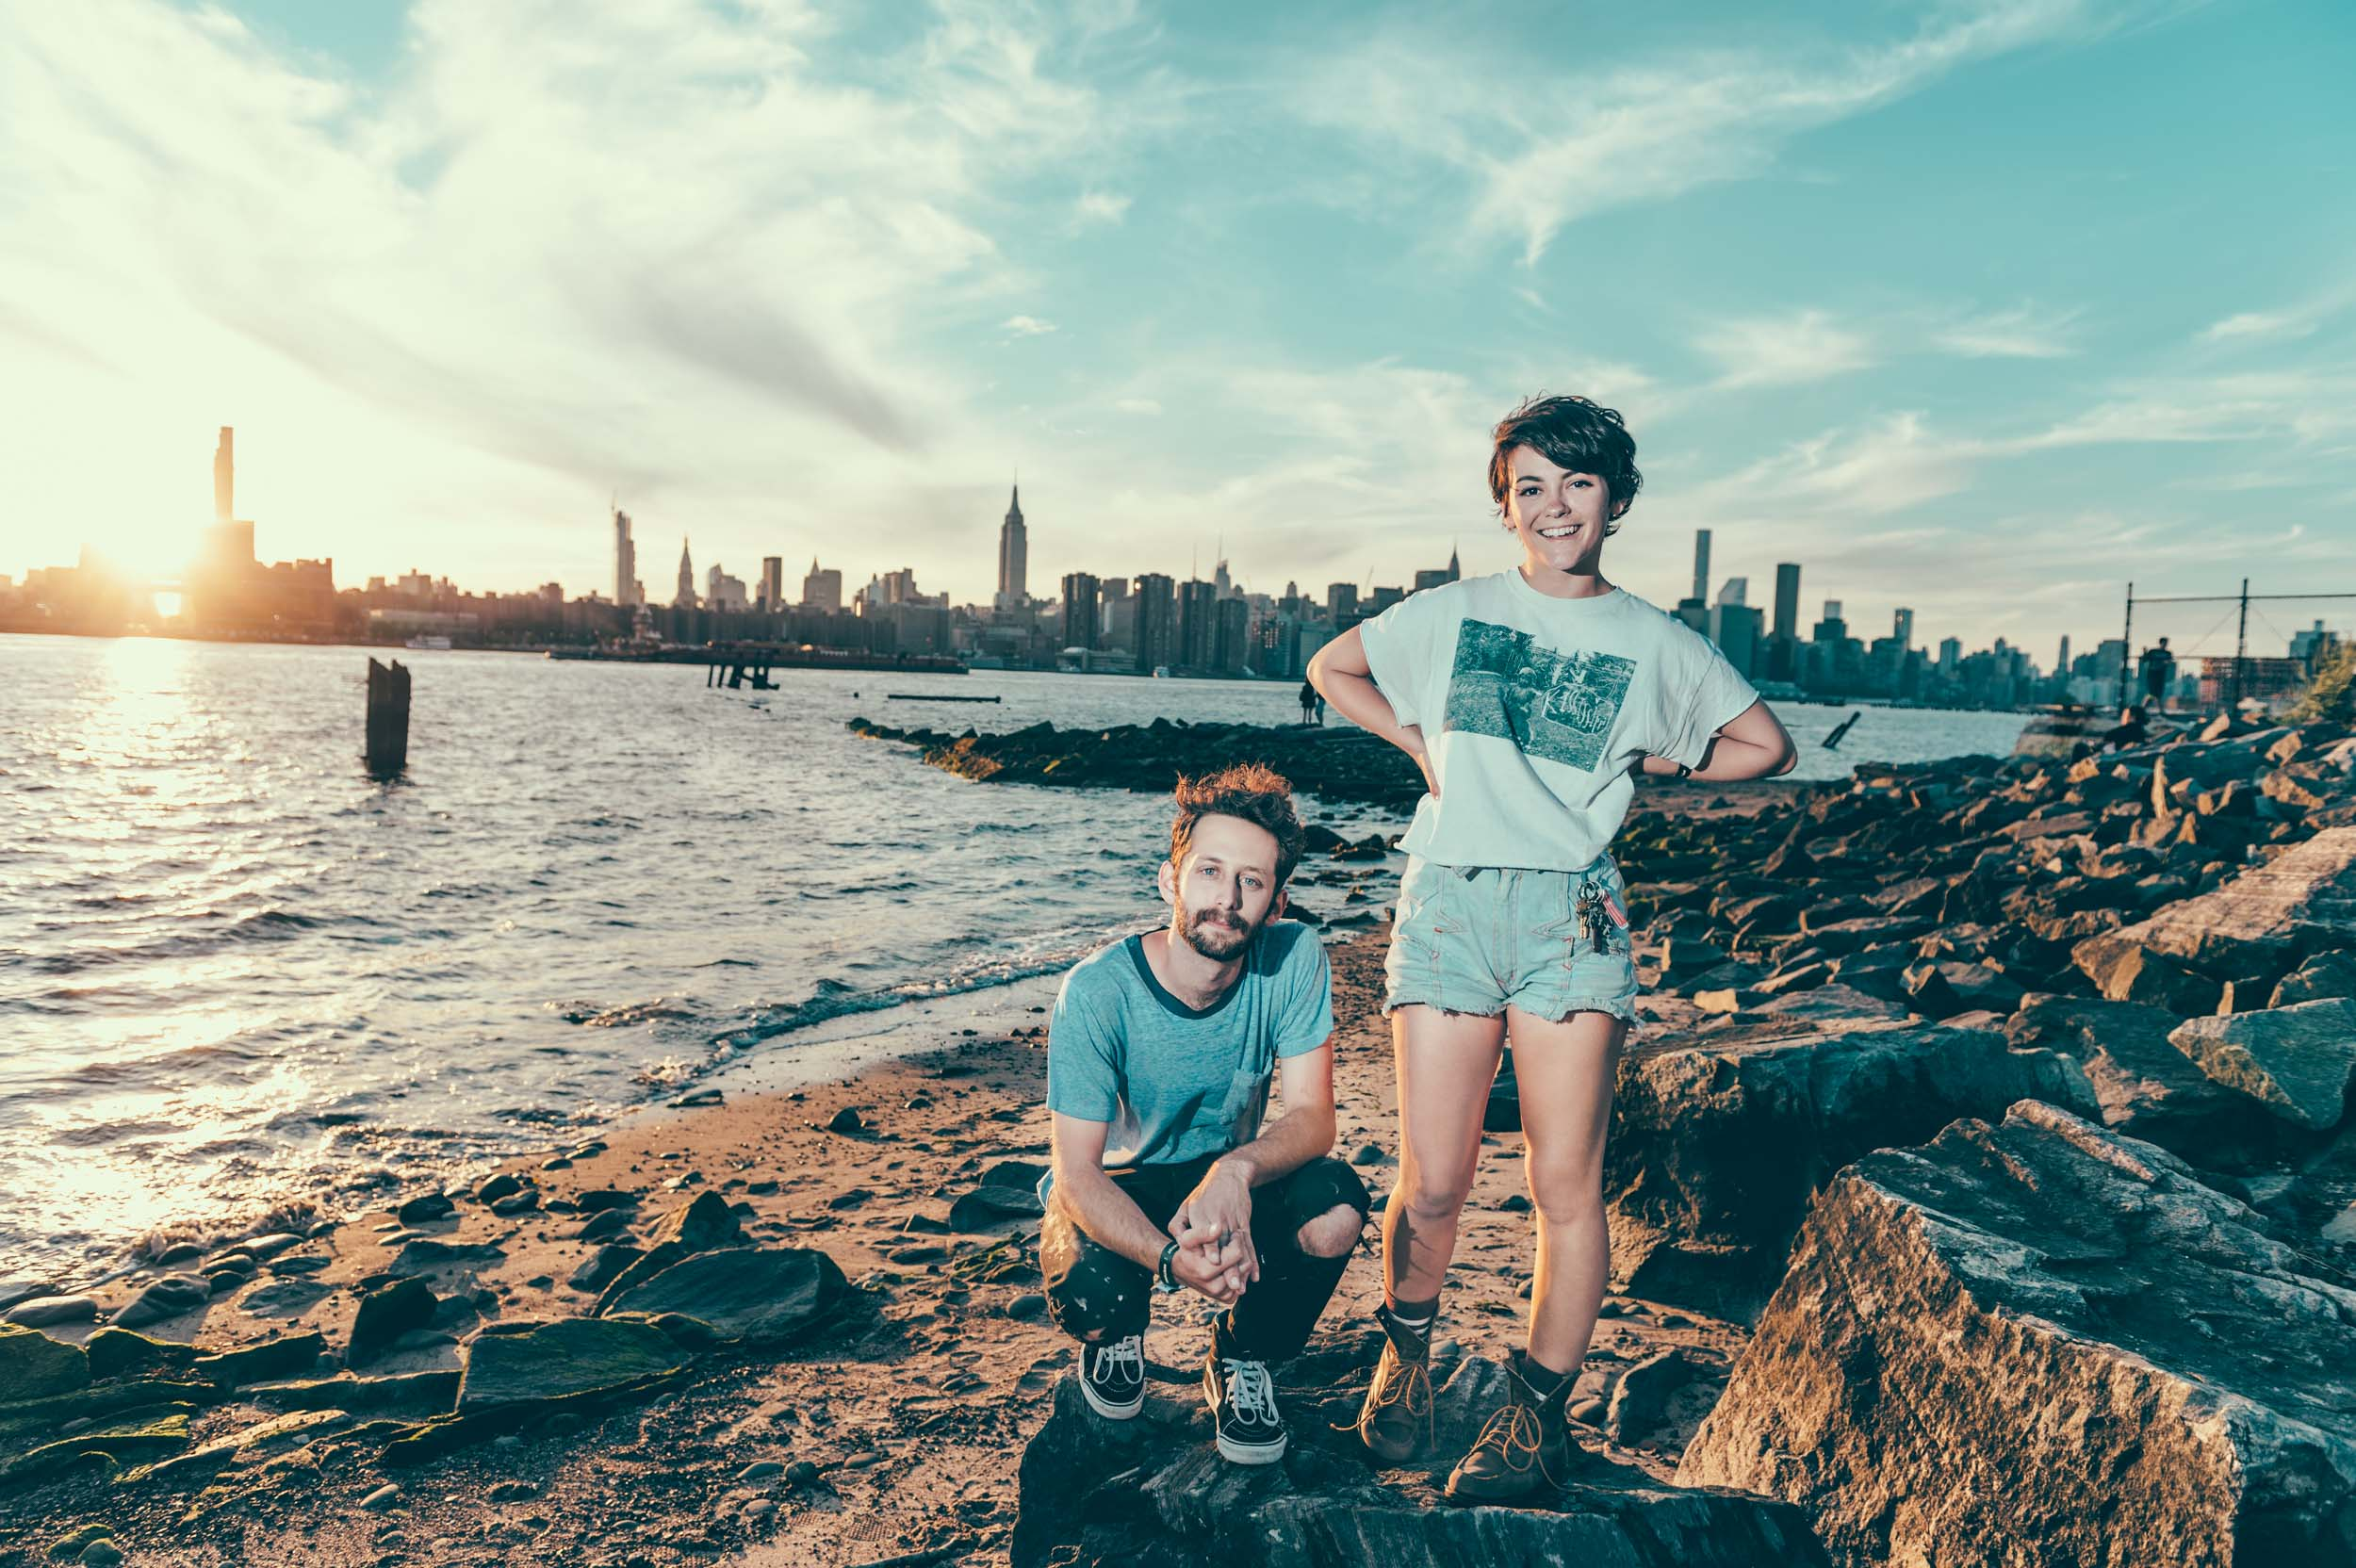 Diet Cig's Noah Bowman and Alex Luciano photographed by Chad Kamenshine